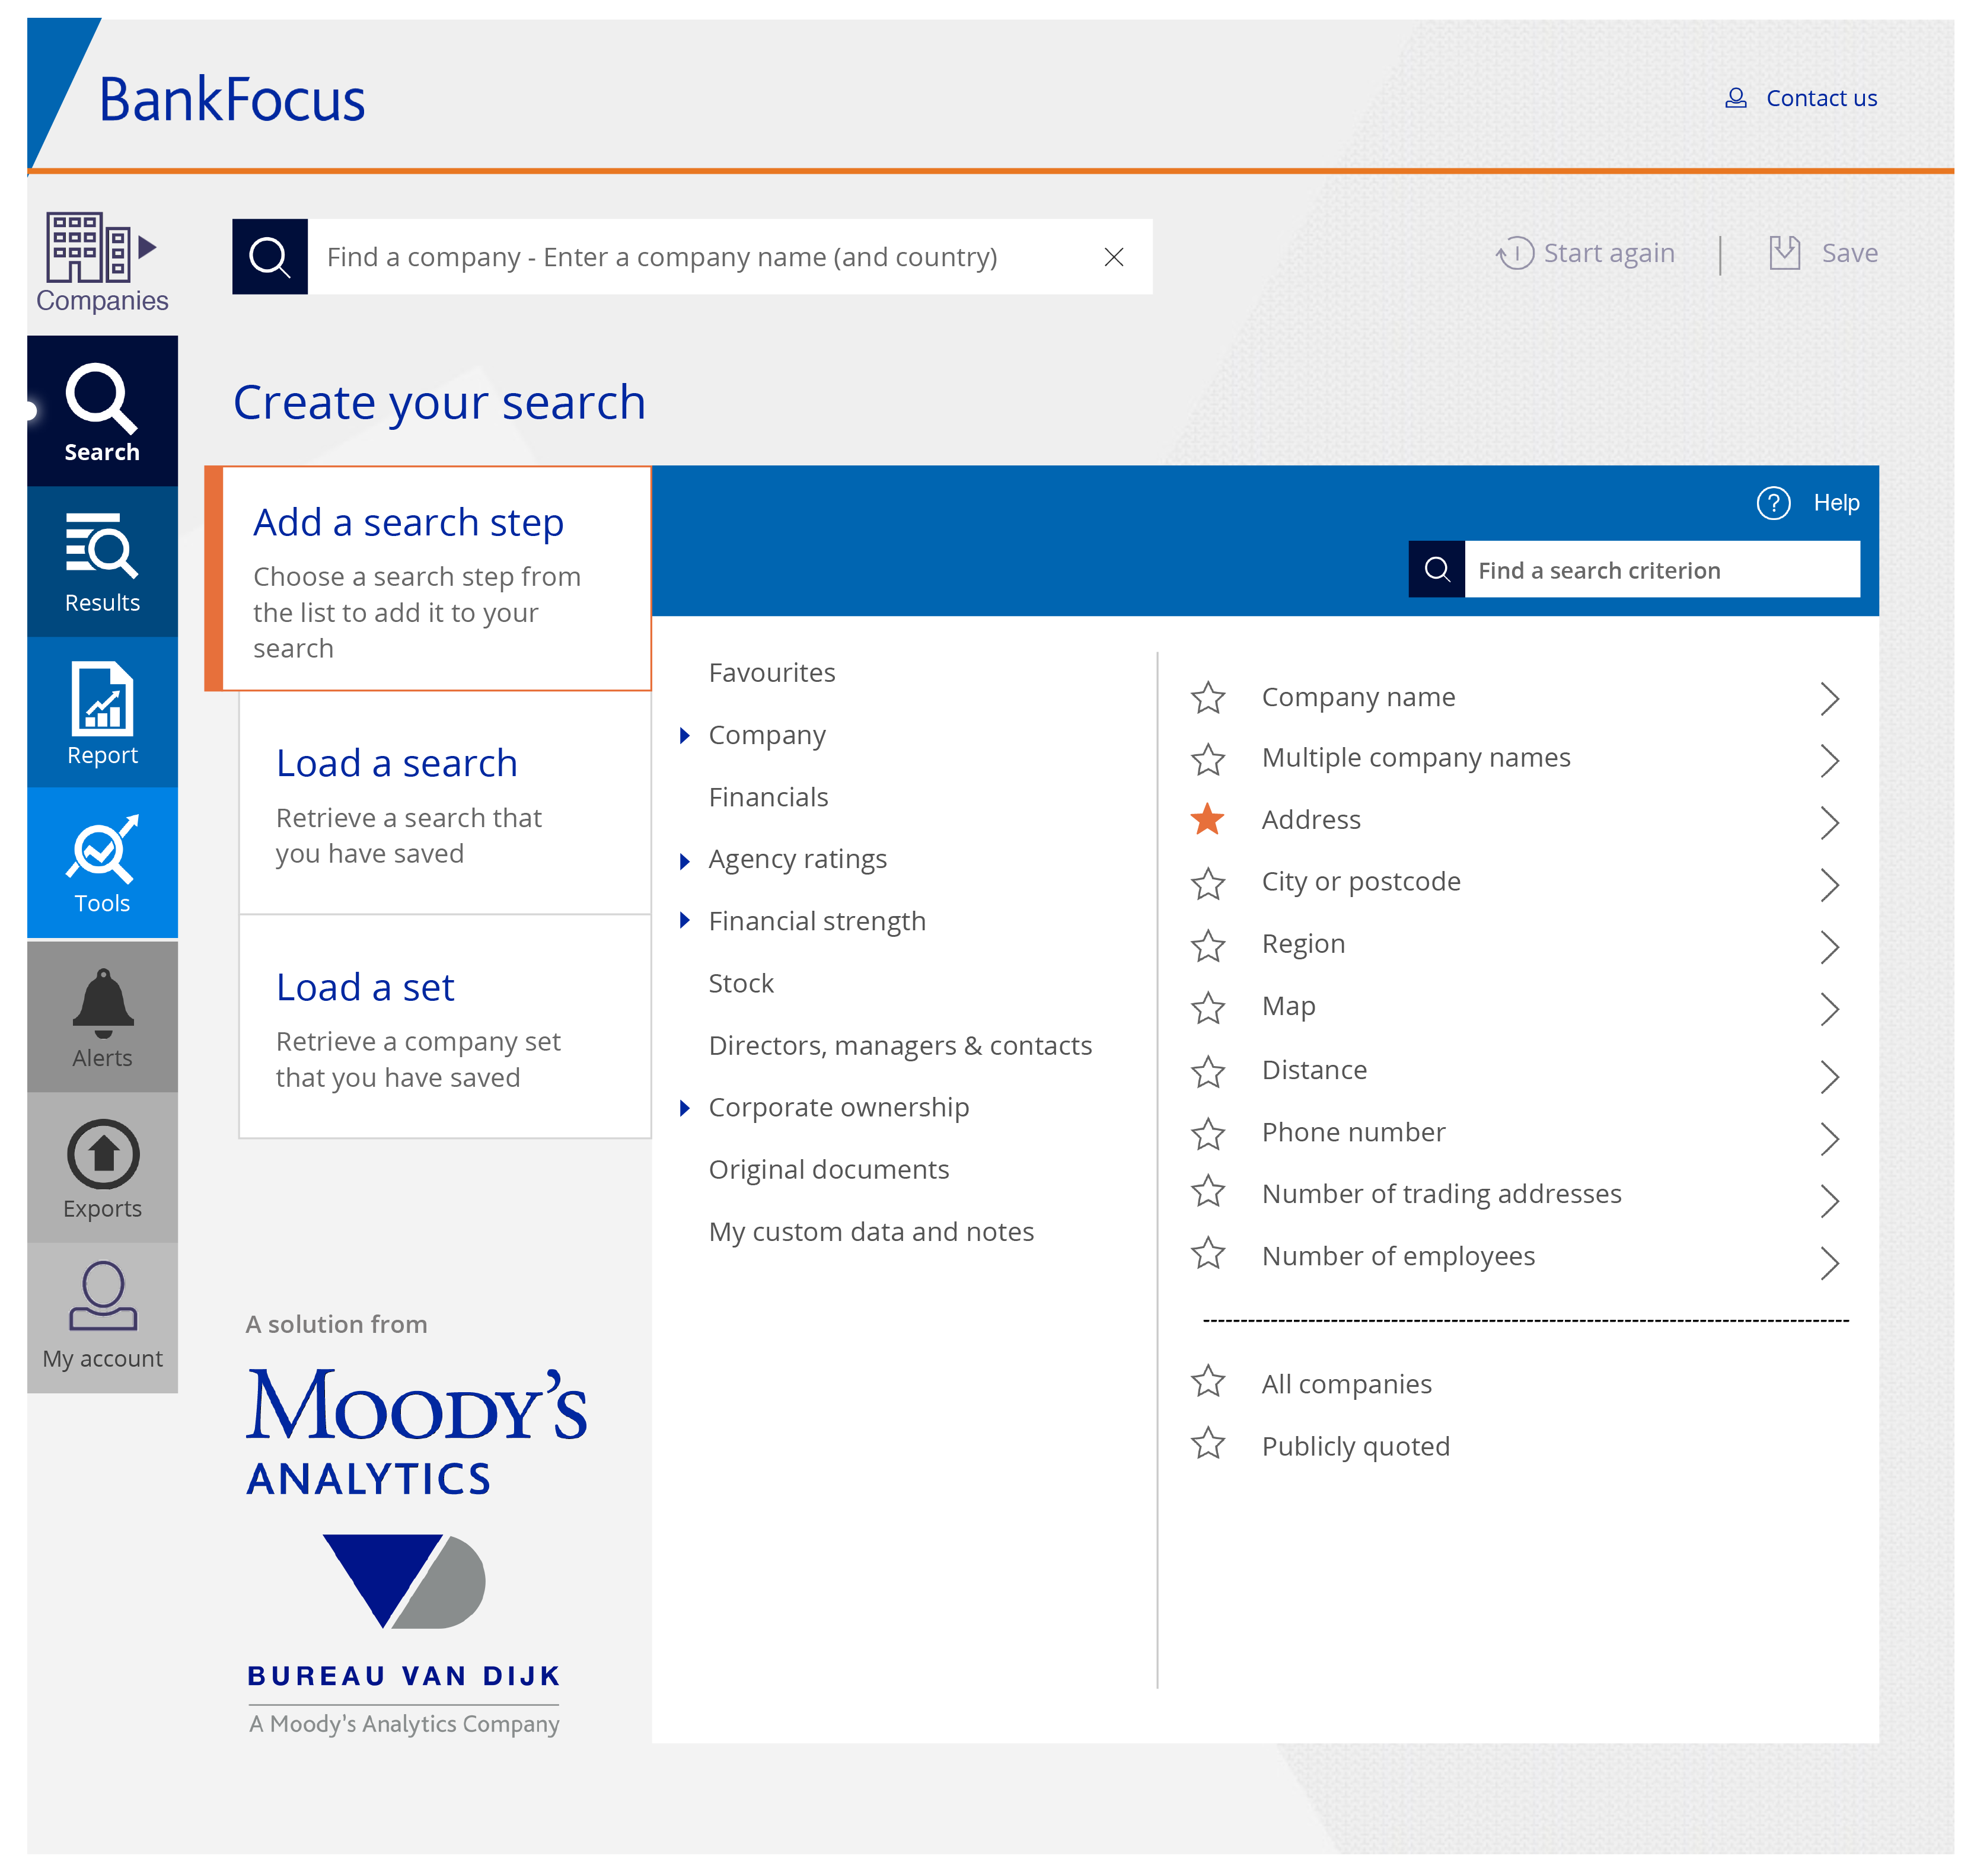 BankFocus interface